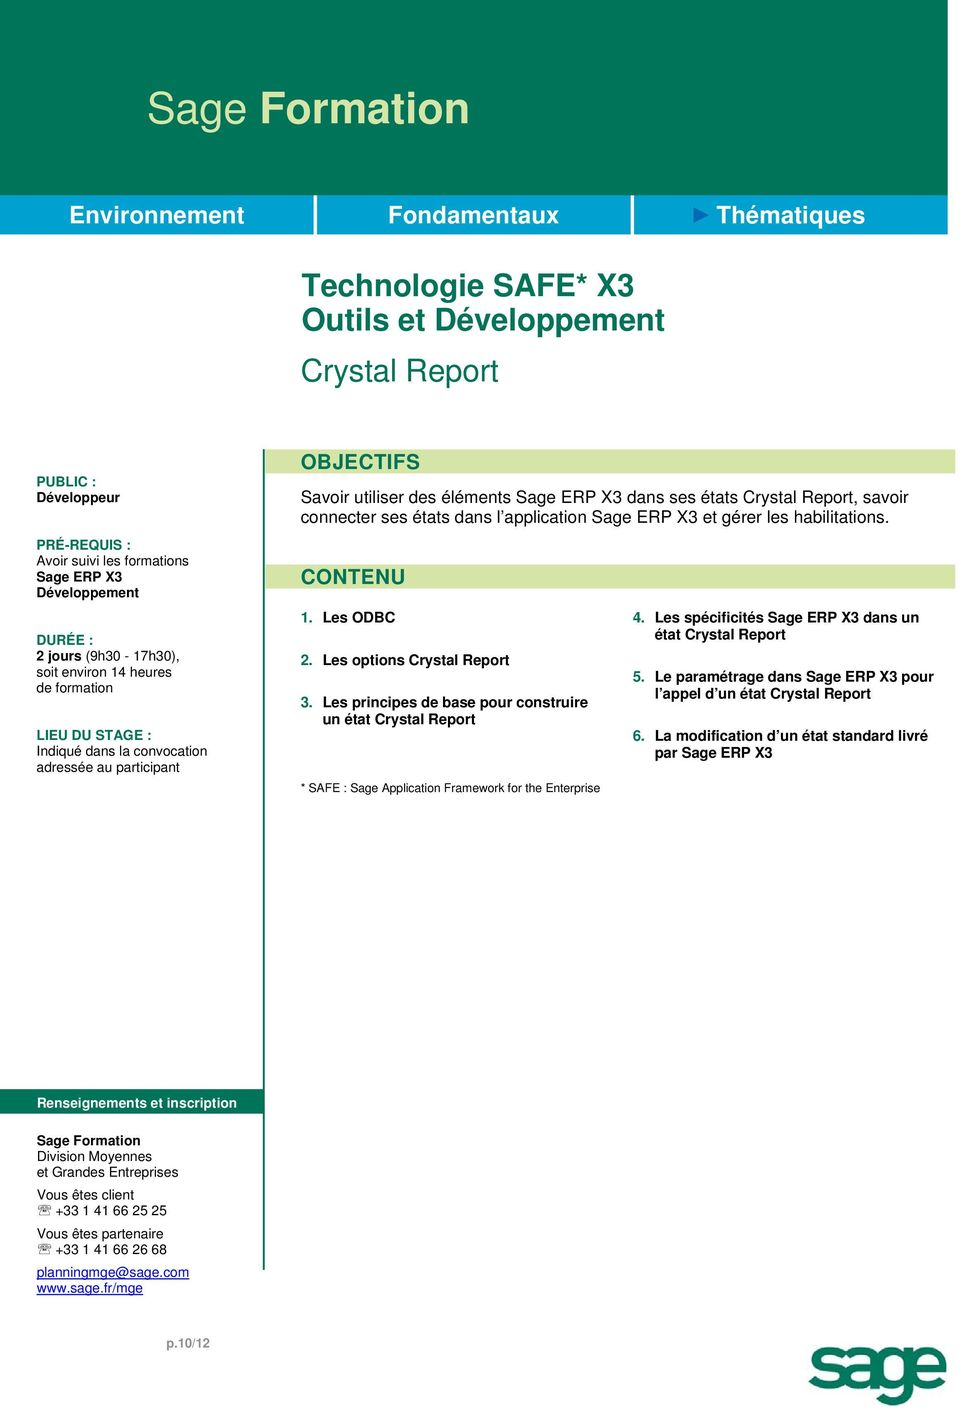 Les ODBC 2. Les options Crystal Report 3. Les principes de base pour construire un état Crystal Report 4.